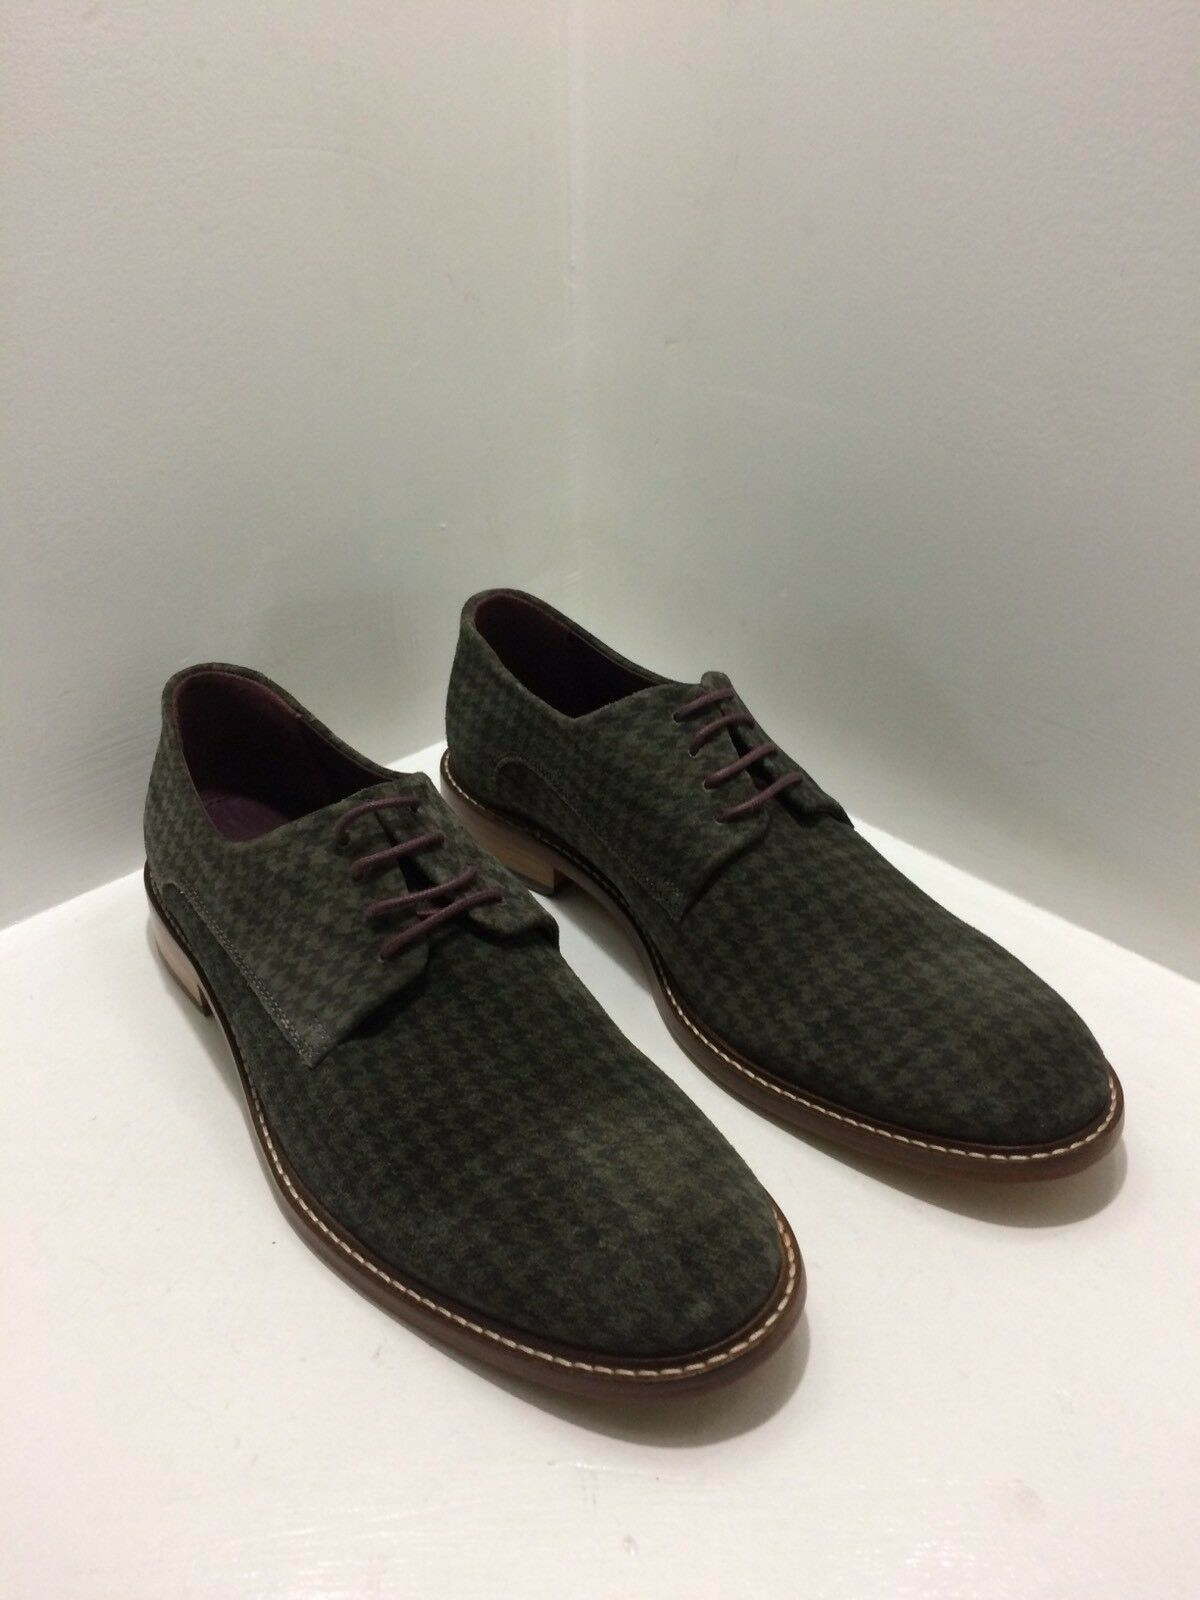 TED BAKER ETTER 2 Uomo's Green Lace Up Houndstooth Suede Oxford Shoes Size US 8